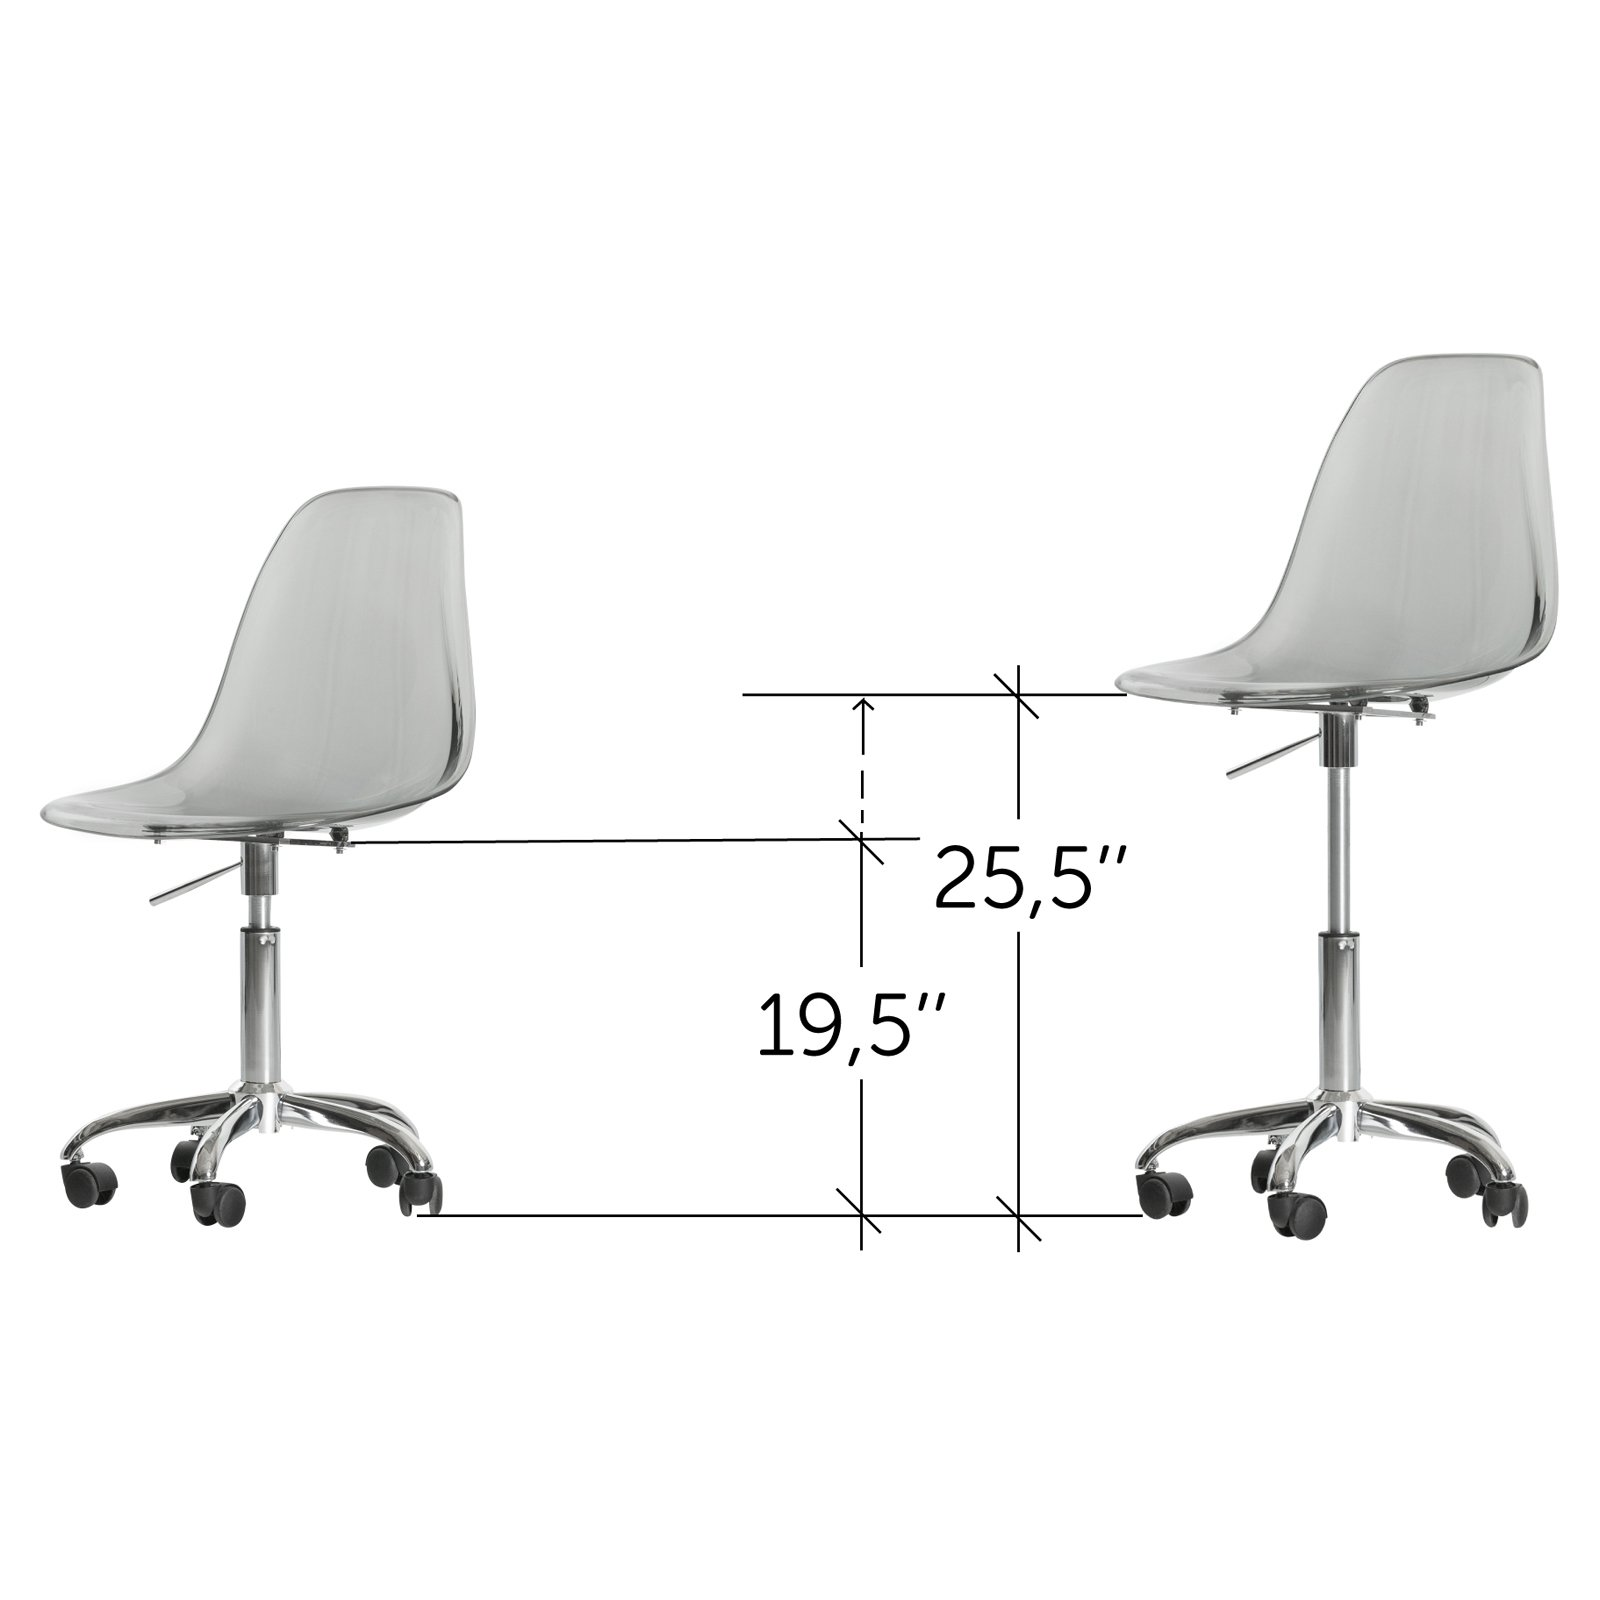 Swell South Shore Annexe Clear Office Chair With Wheels Multiple Forskolin Free Trial Chair Design Images Forskolin Free Trialorg